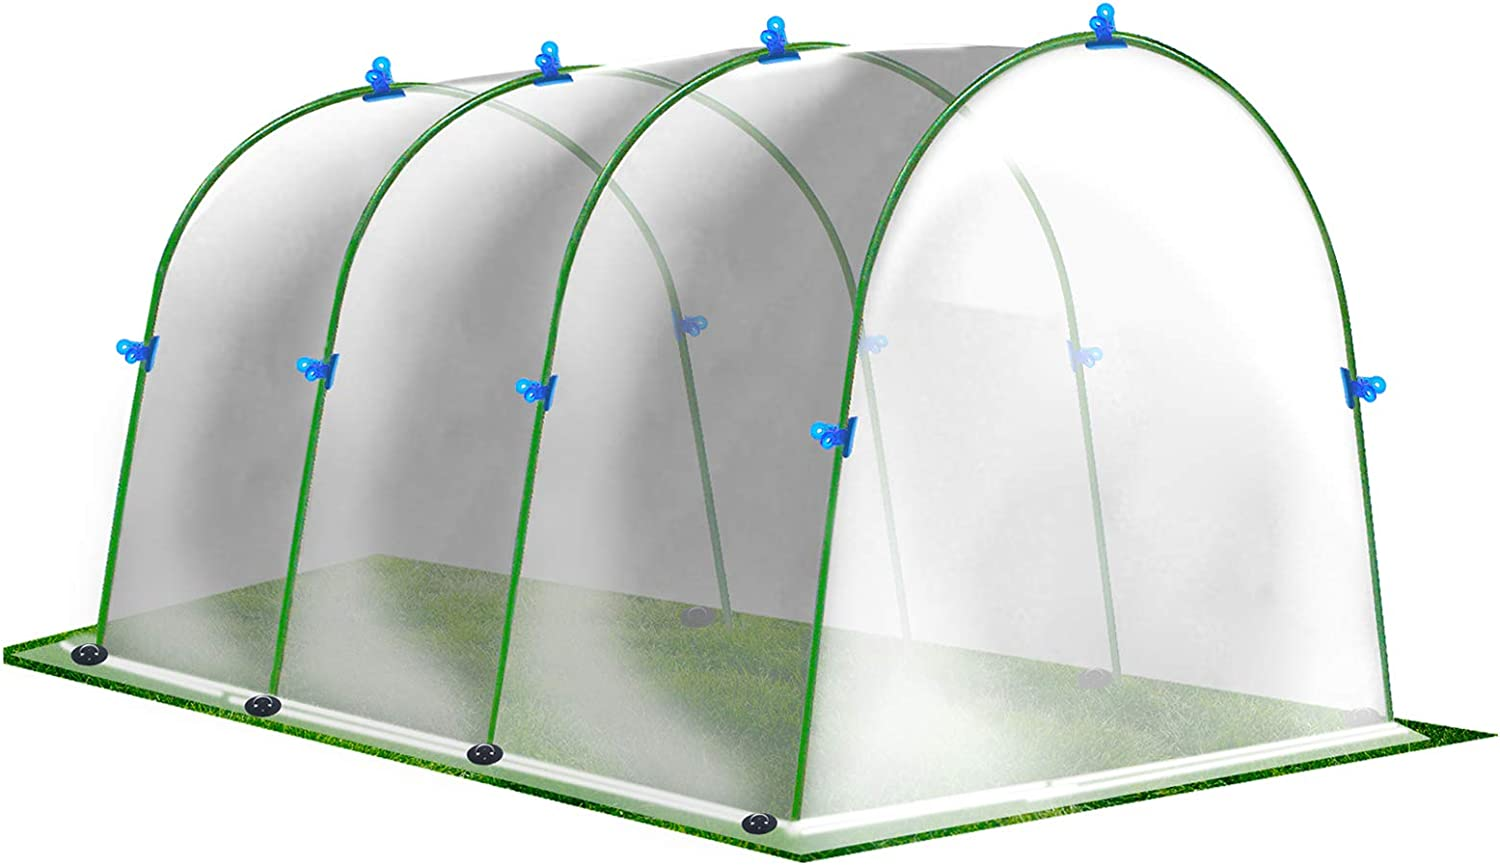 G-LEAF Greenhouse Hoops W/Plant Cover, Garden Grow Tunnel Greenhouse Polyethylene Tent Arch Film for Horticulture, Garden and Agriculture